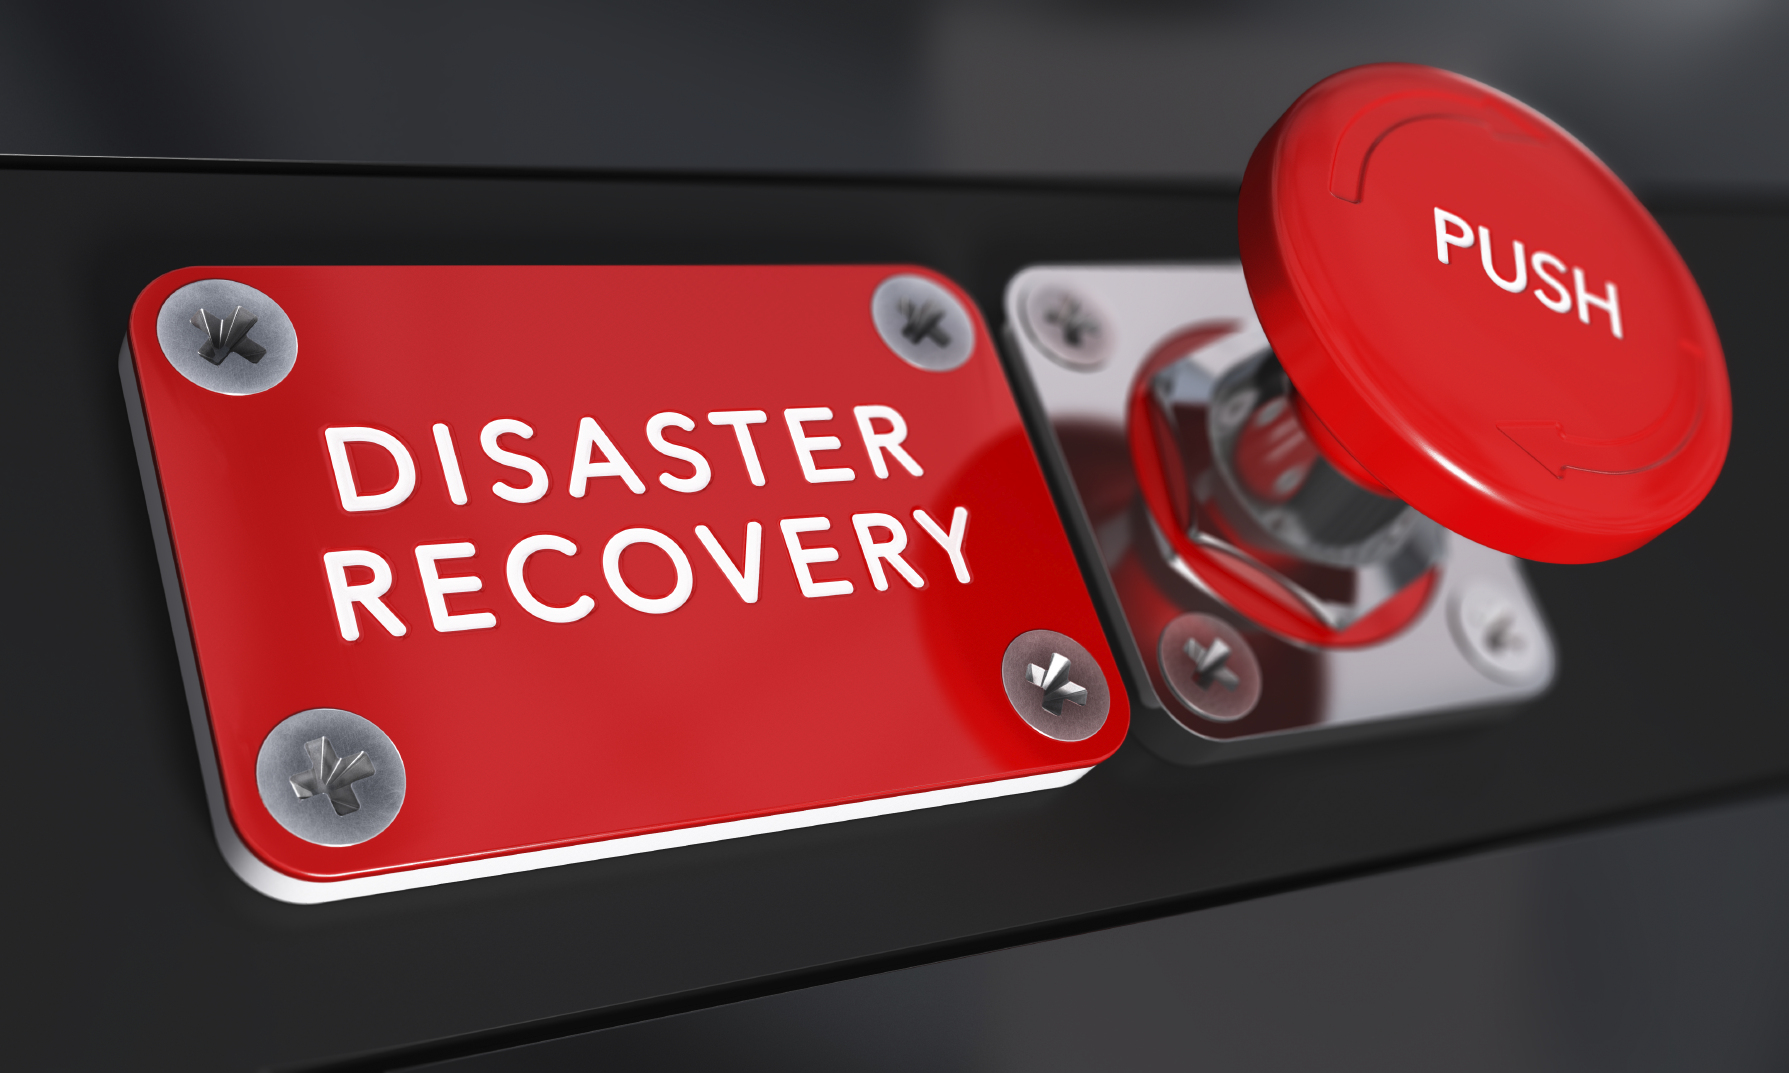 disaster_recovery_push_button